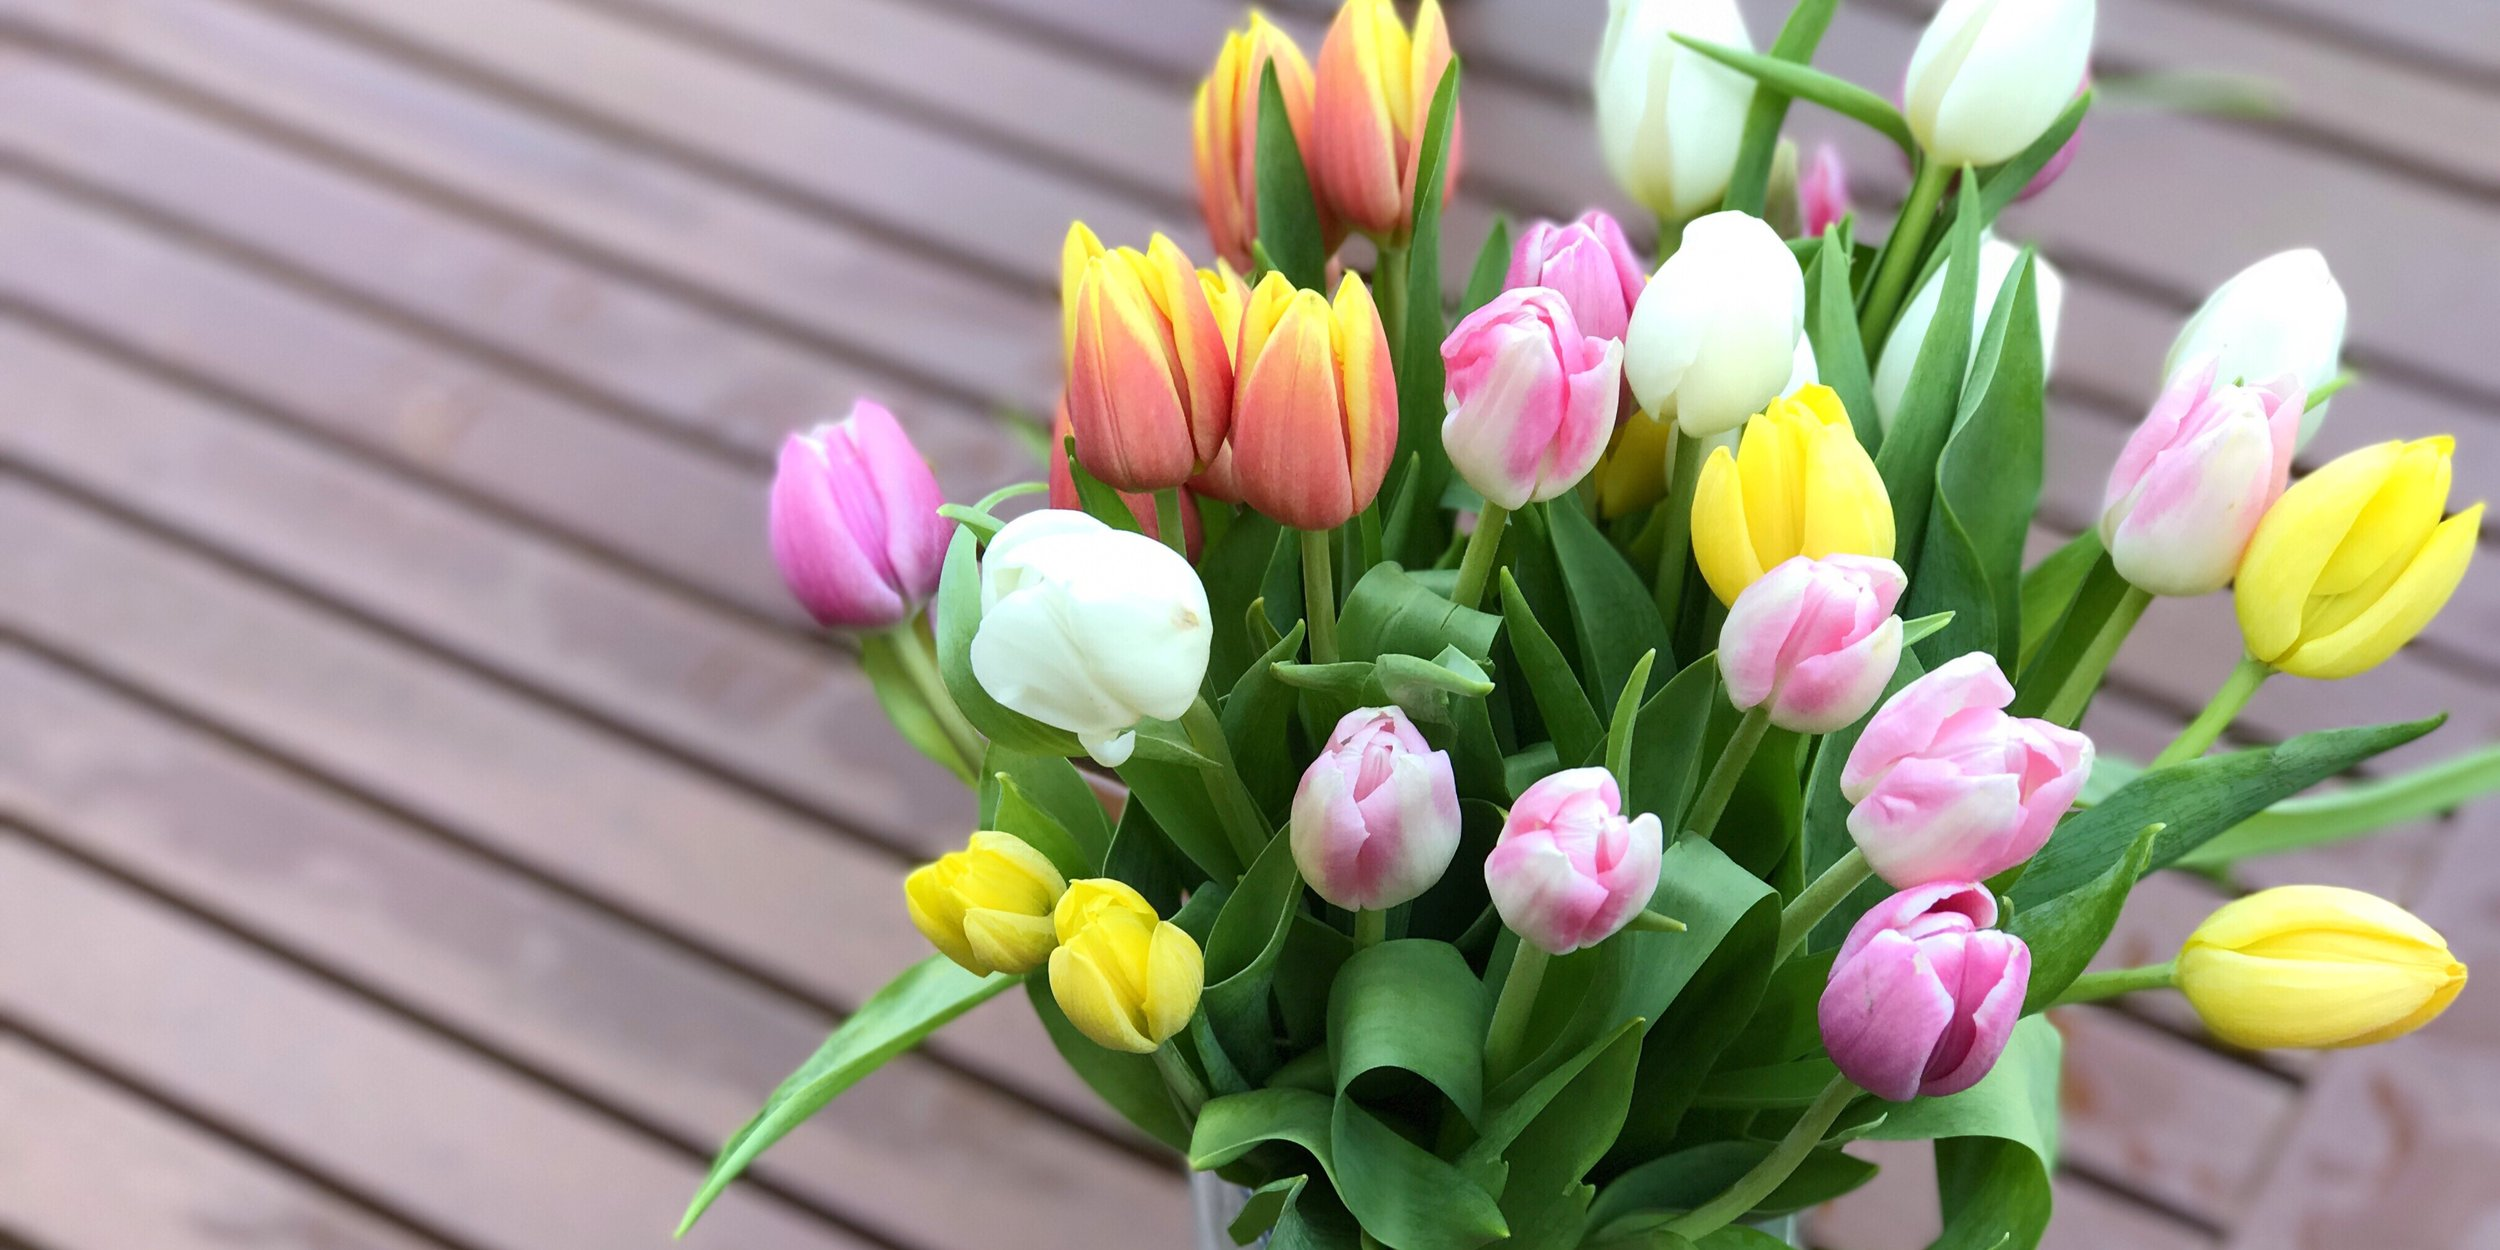 Pretty Mother's Day Tulips | Weekend Links No 3 | BySarahRae.com